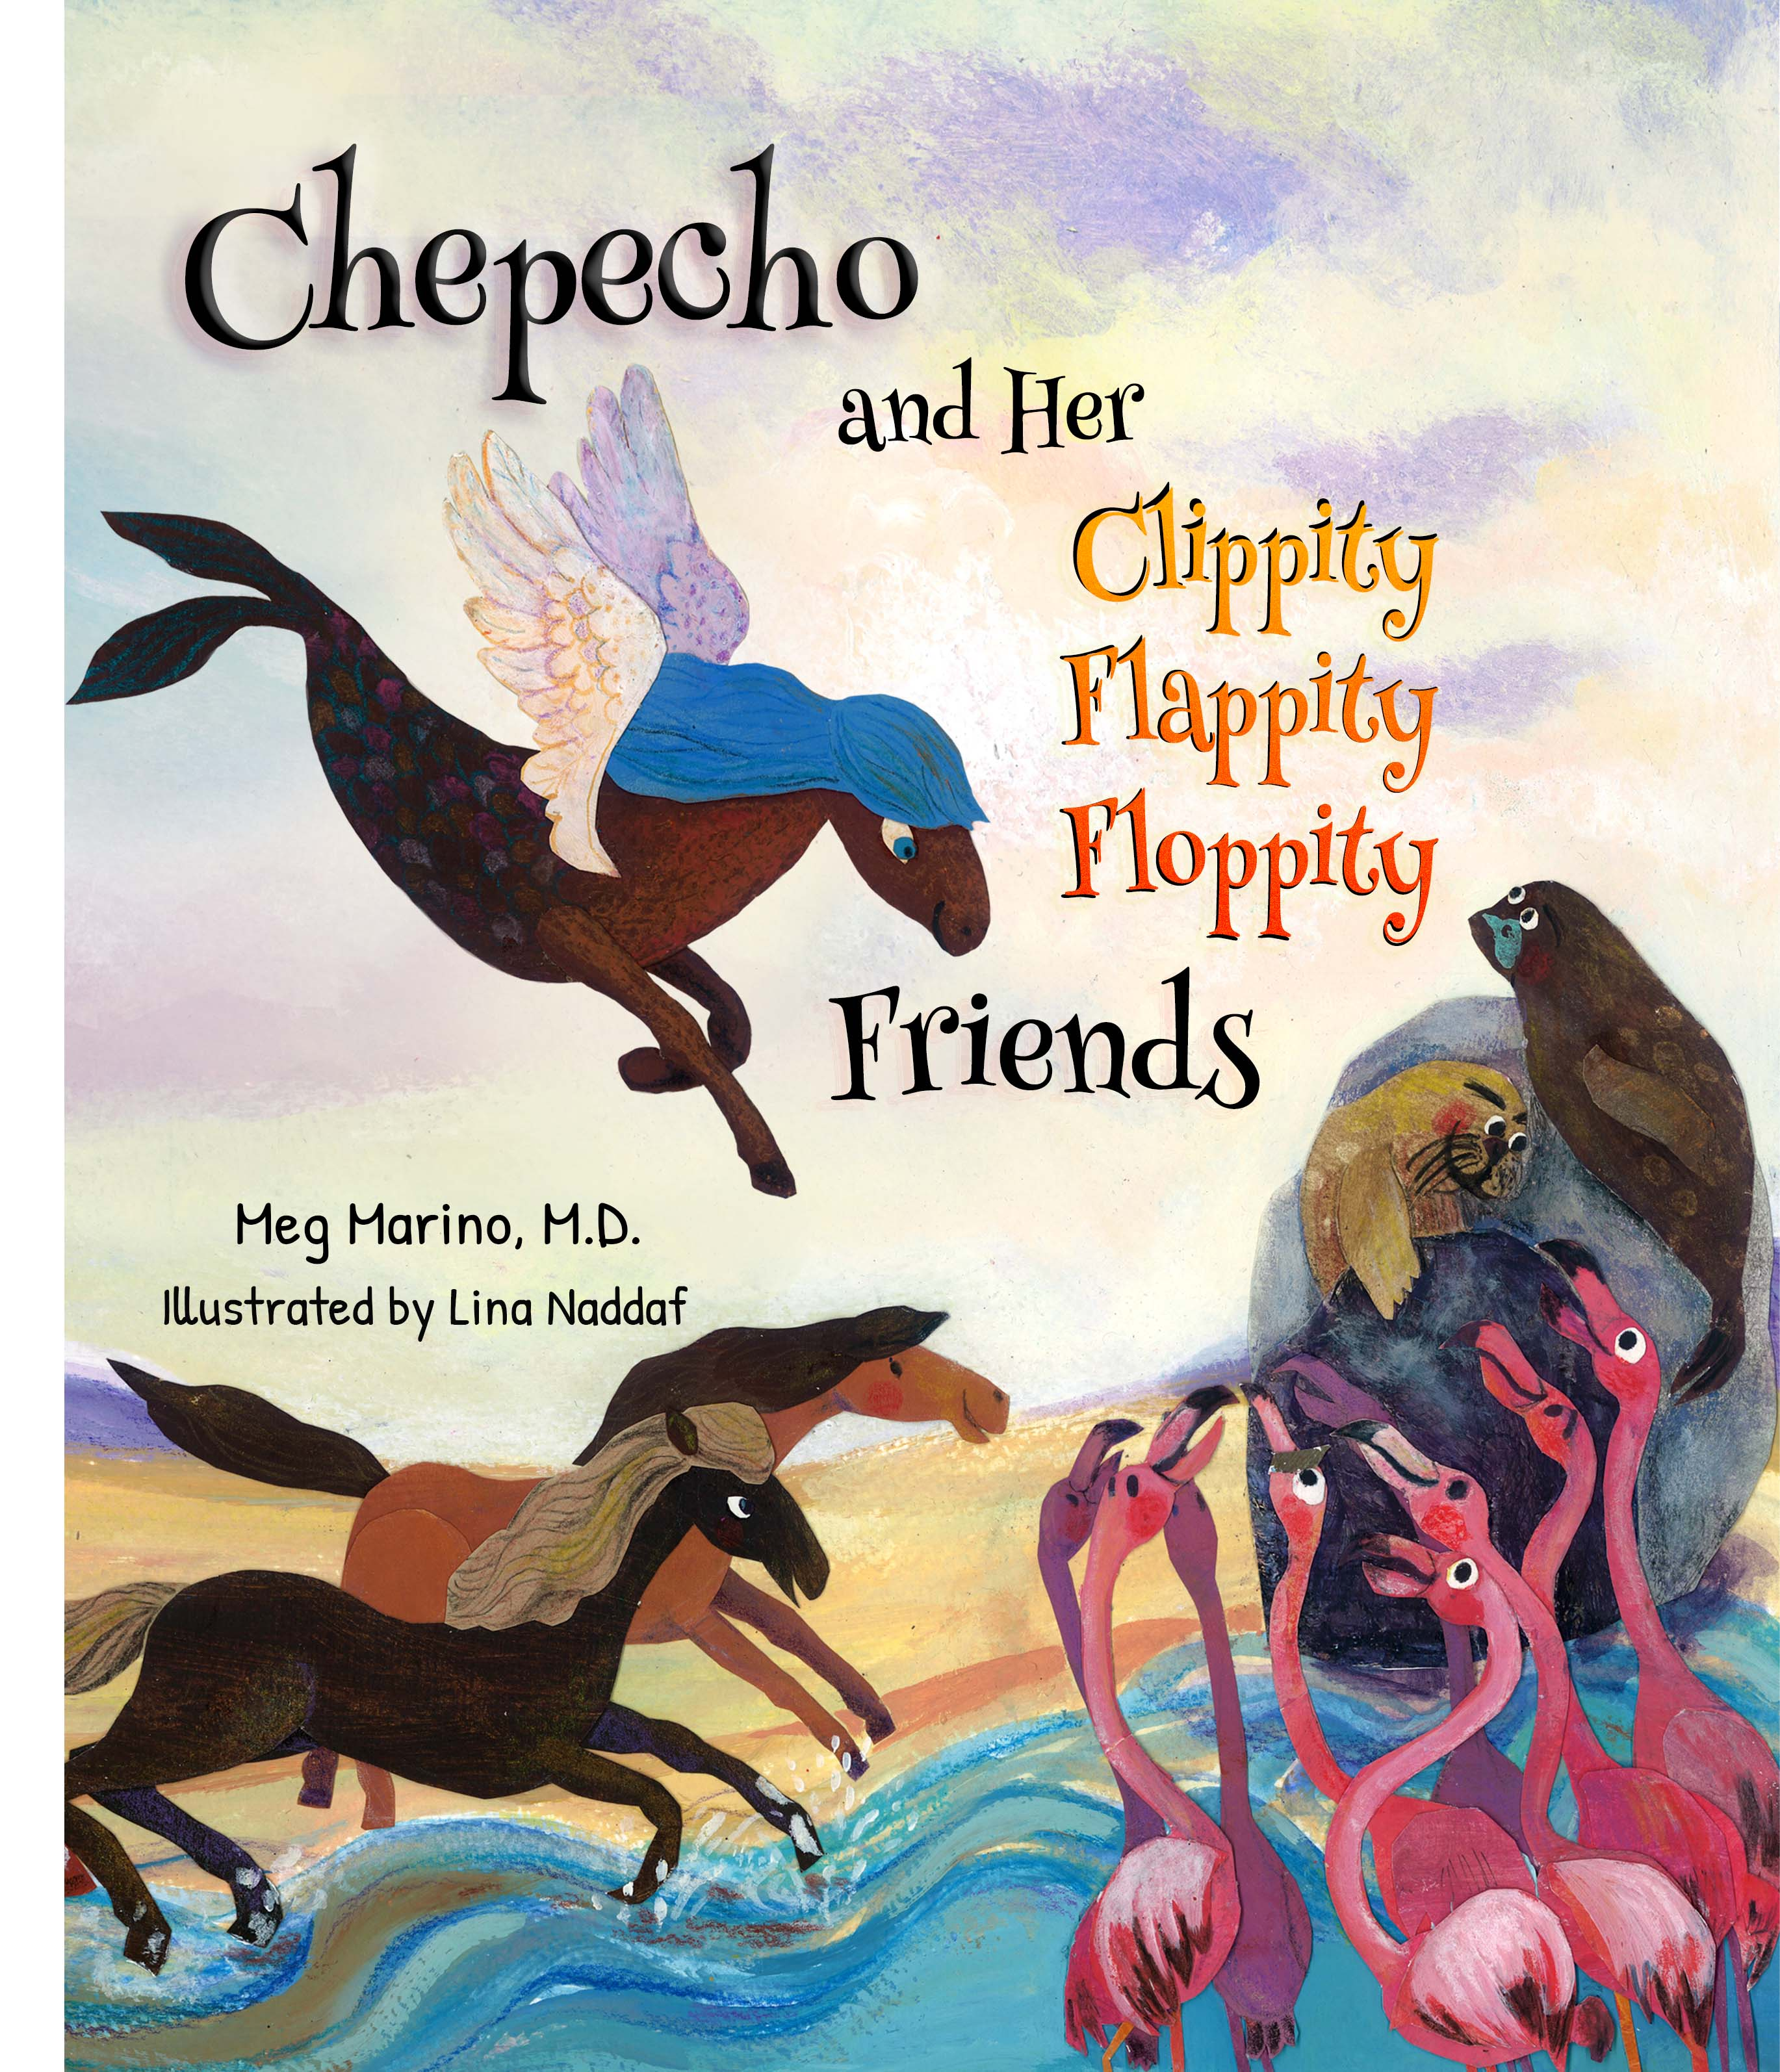 Chepecho and Her Clippity Flappity Floppity Friends